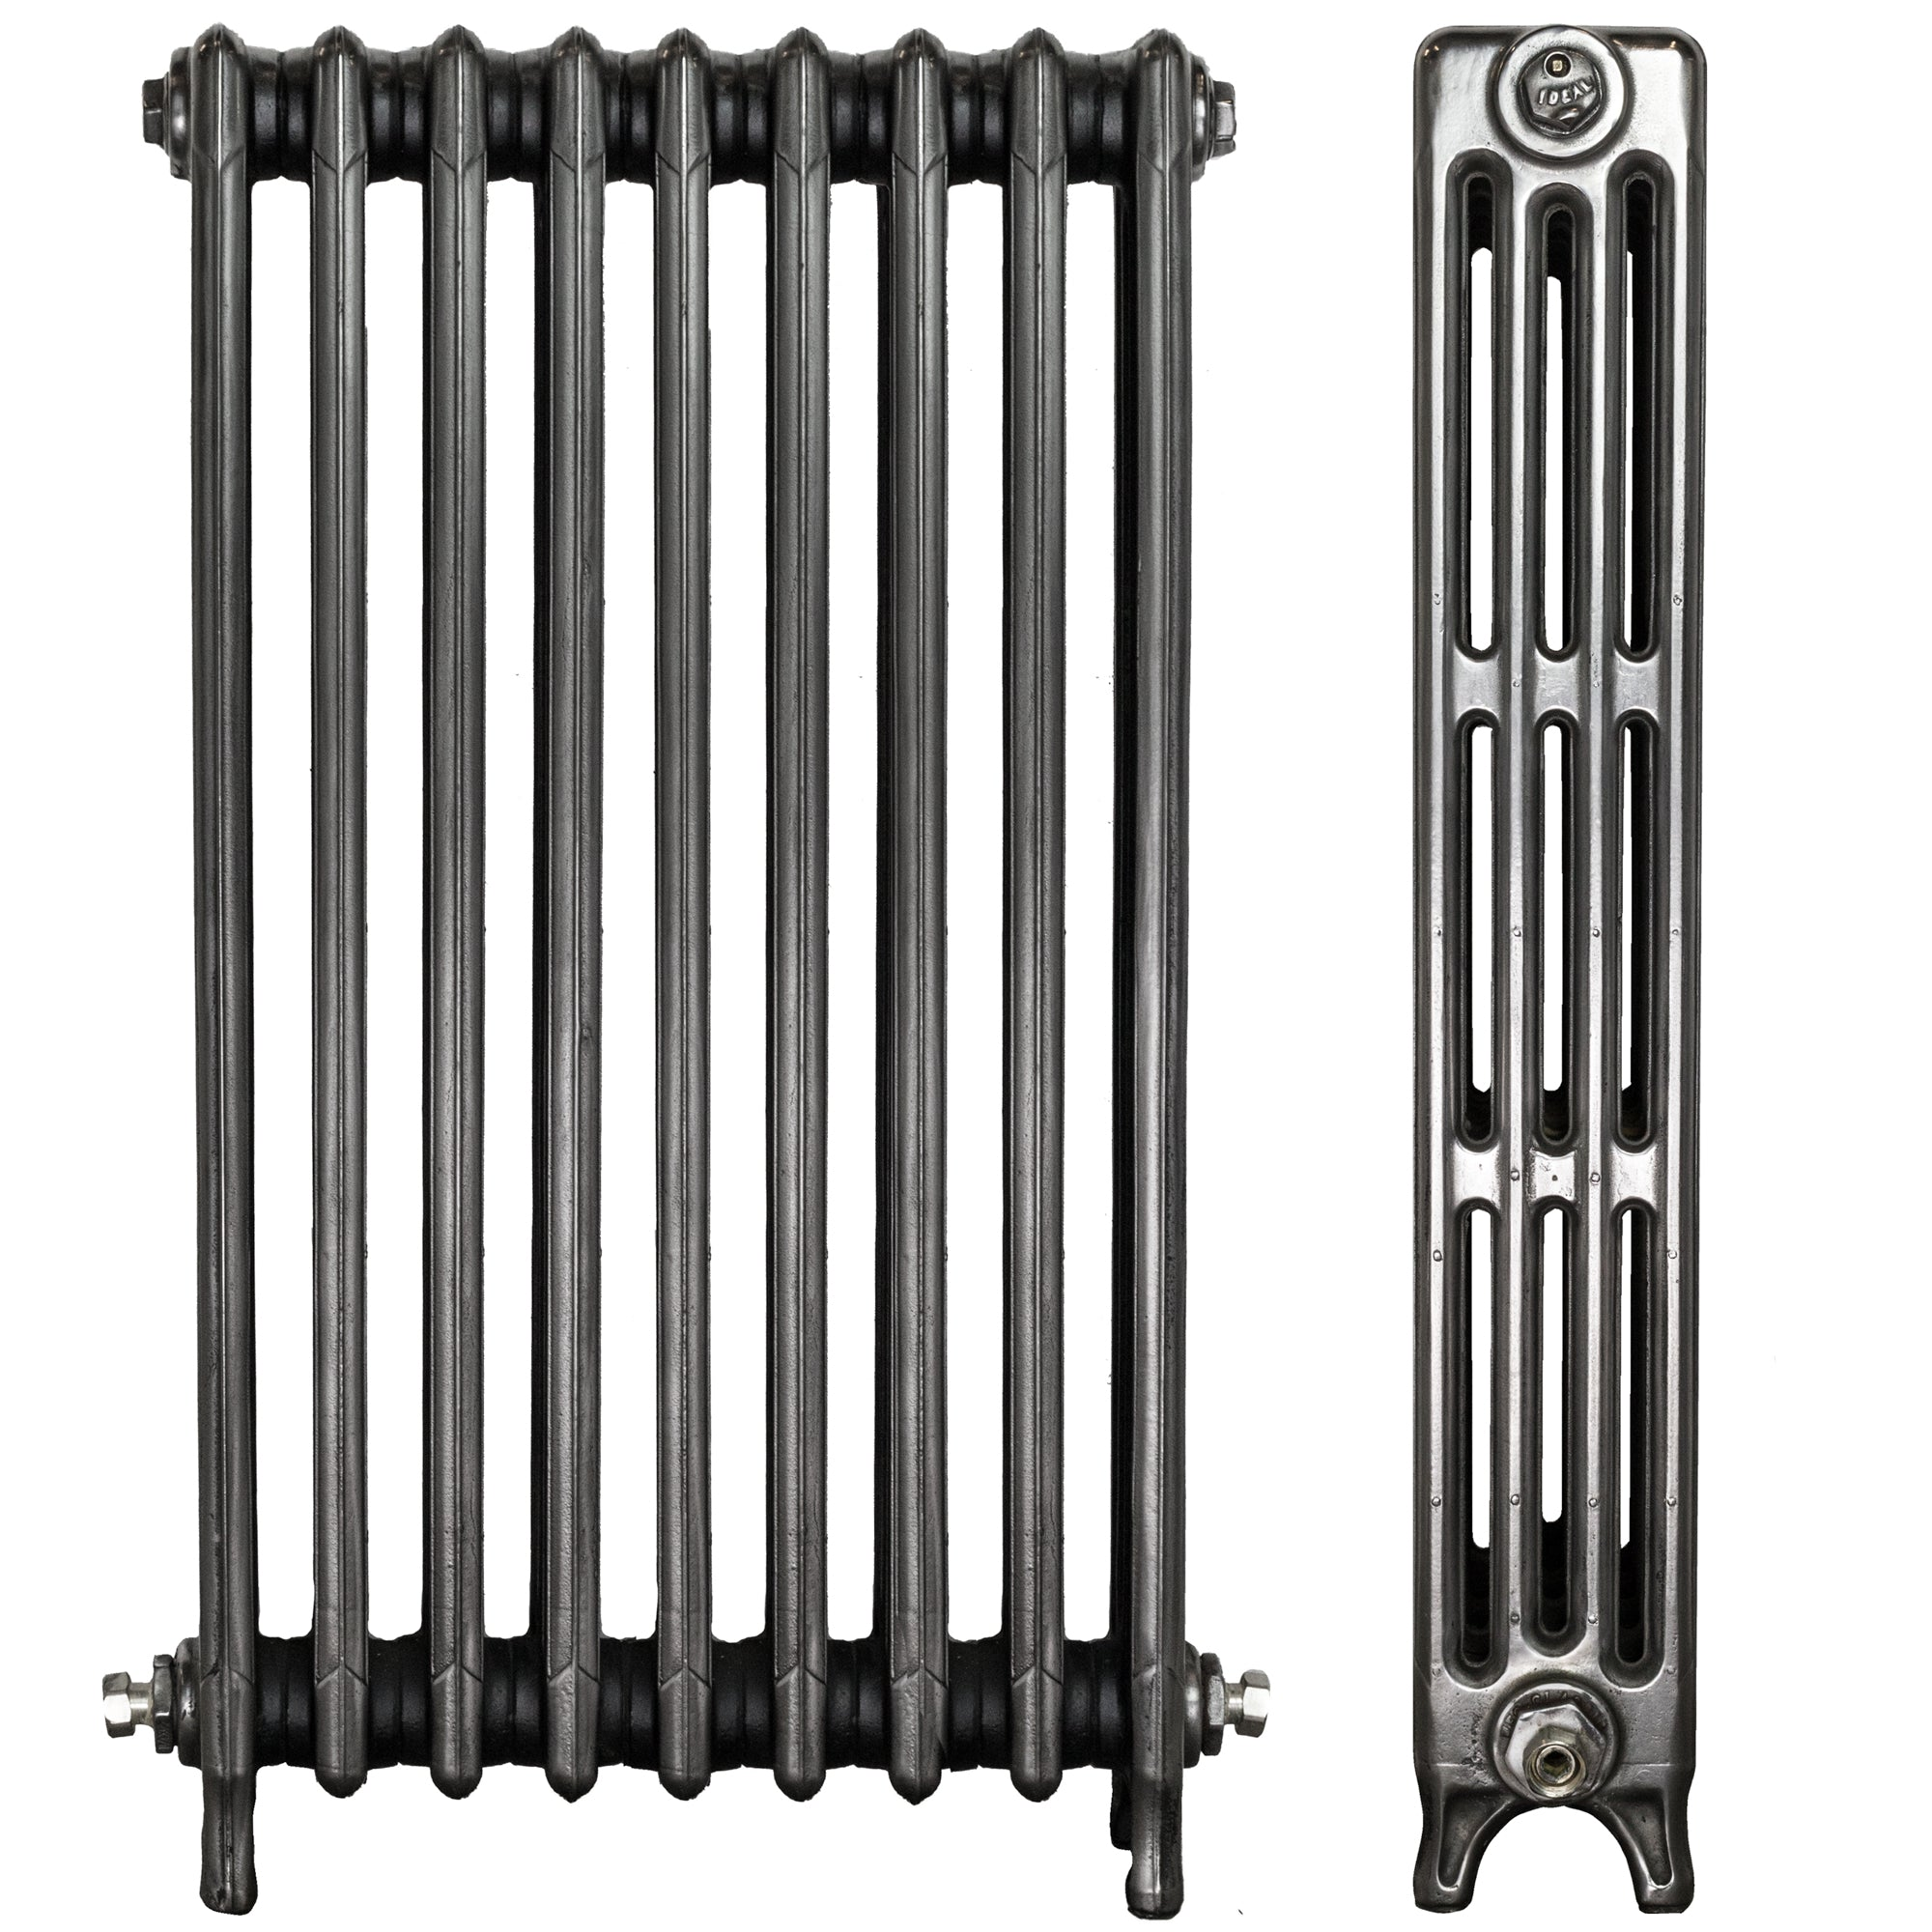 Fully Restored Ideal Cast Iron Radiator 4 Column 9 Section (92cm tall)